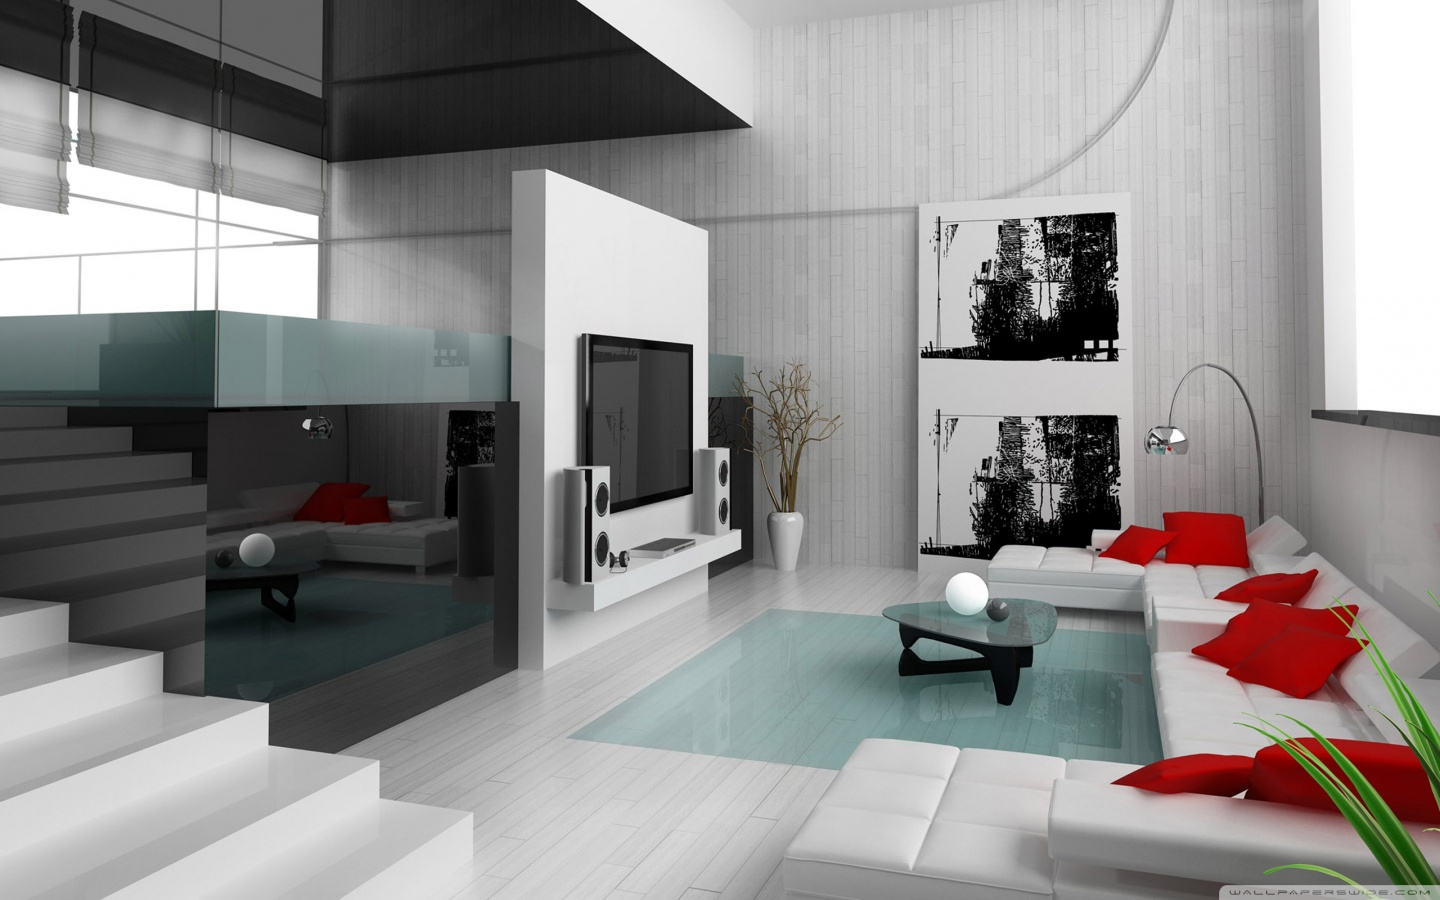 Minimalist interior design imagination art architecture for Modern contemporary interior design